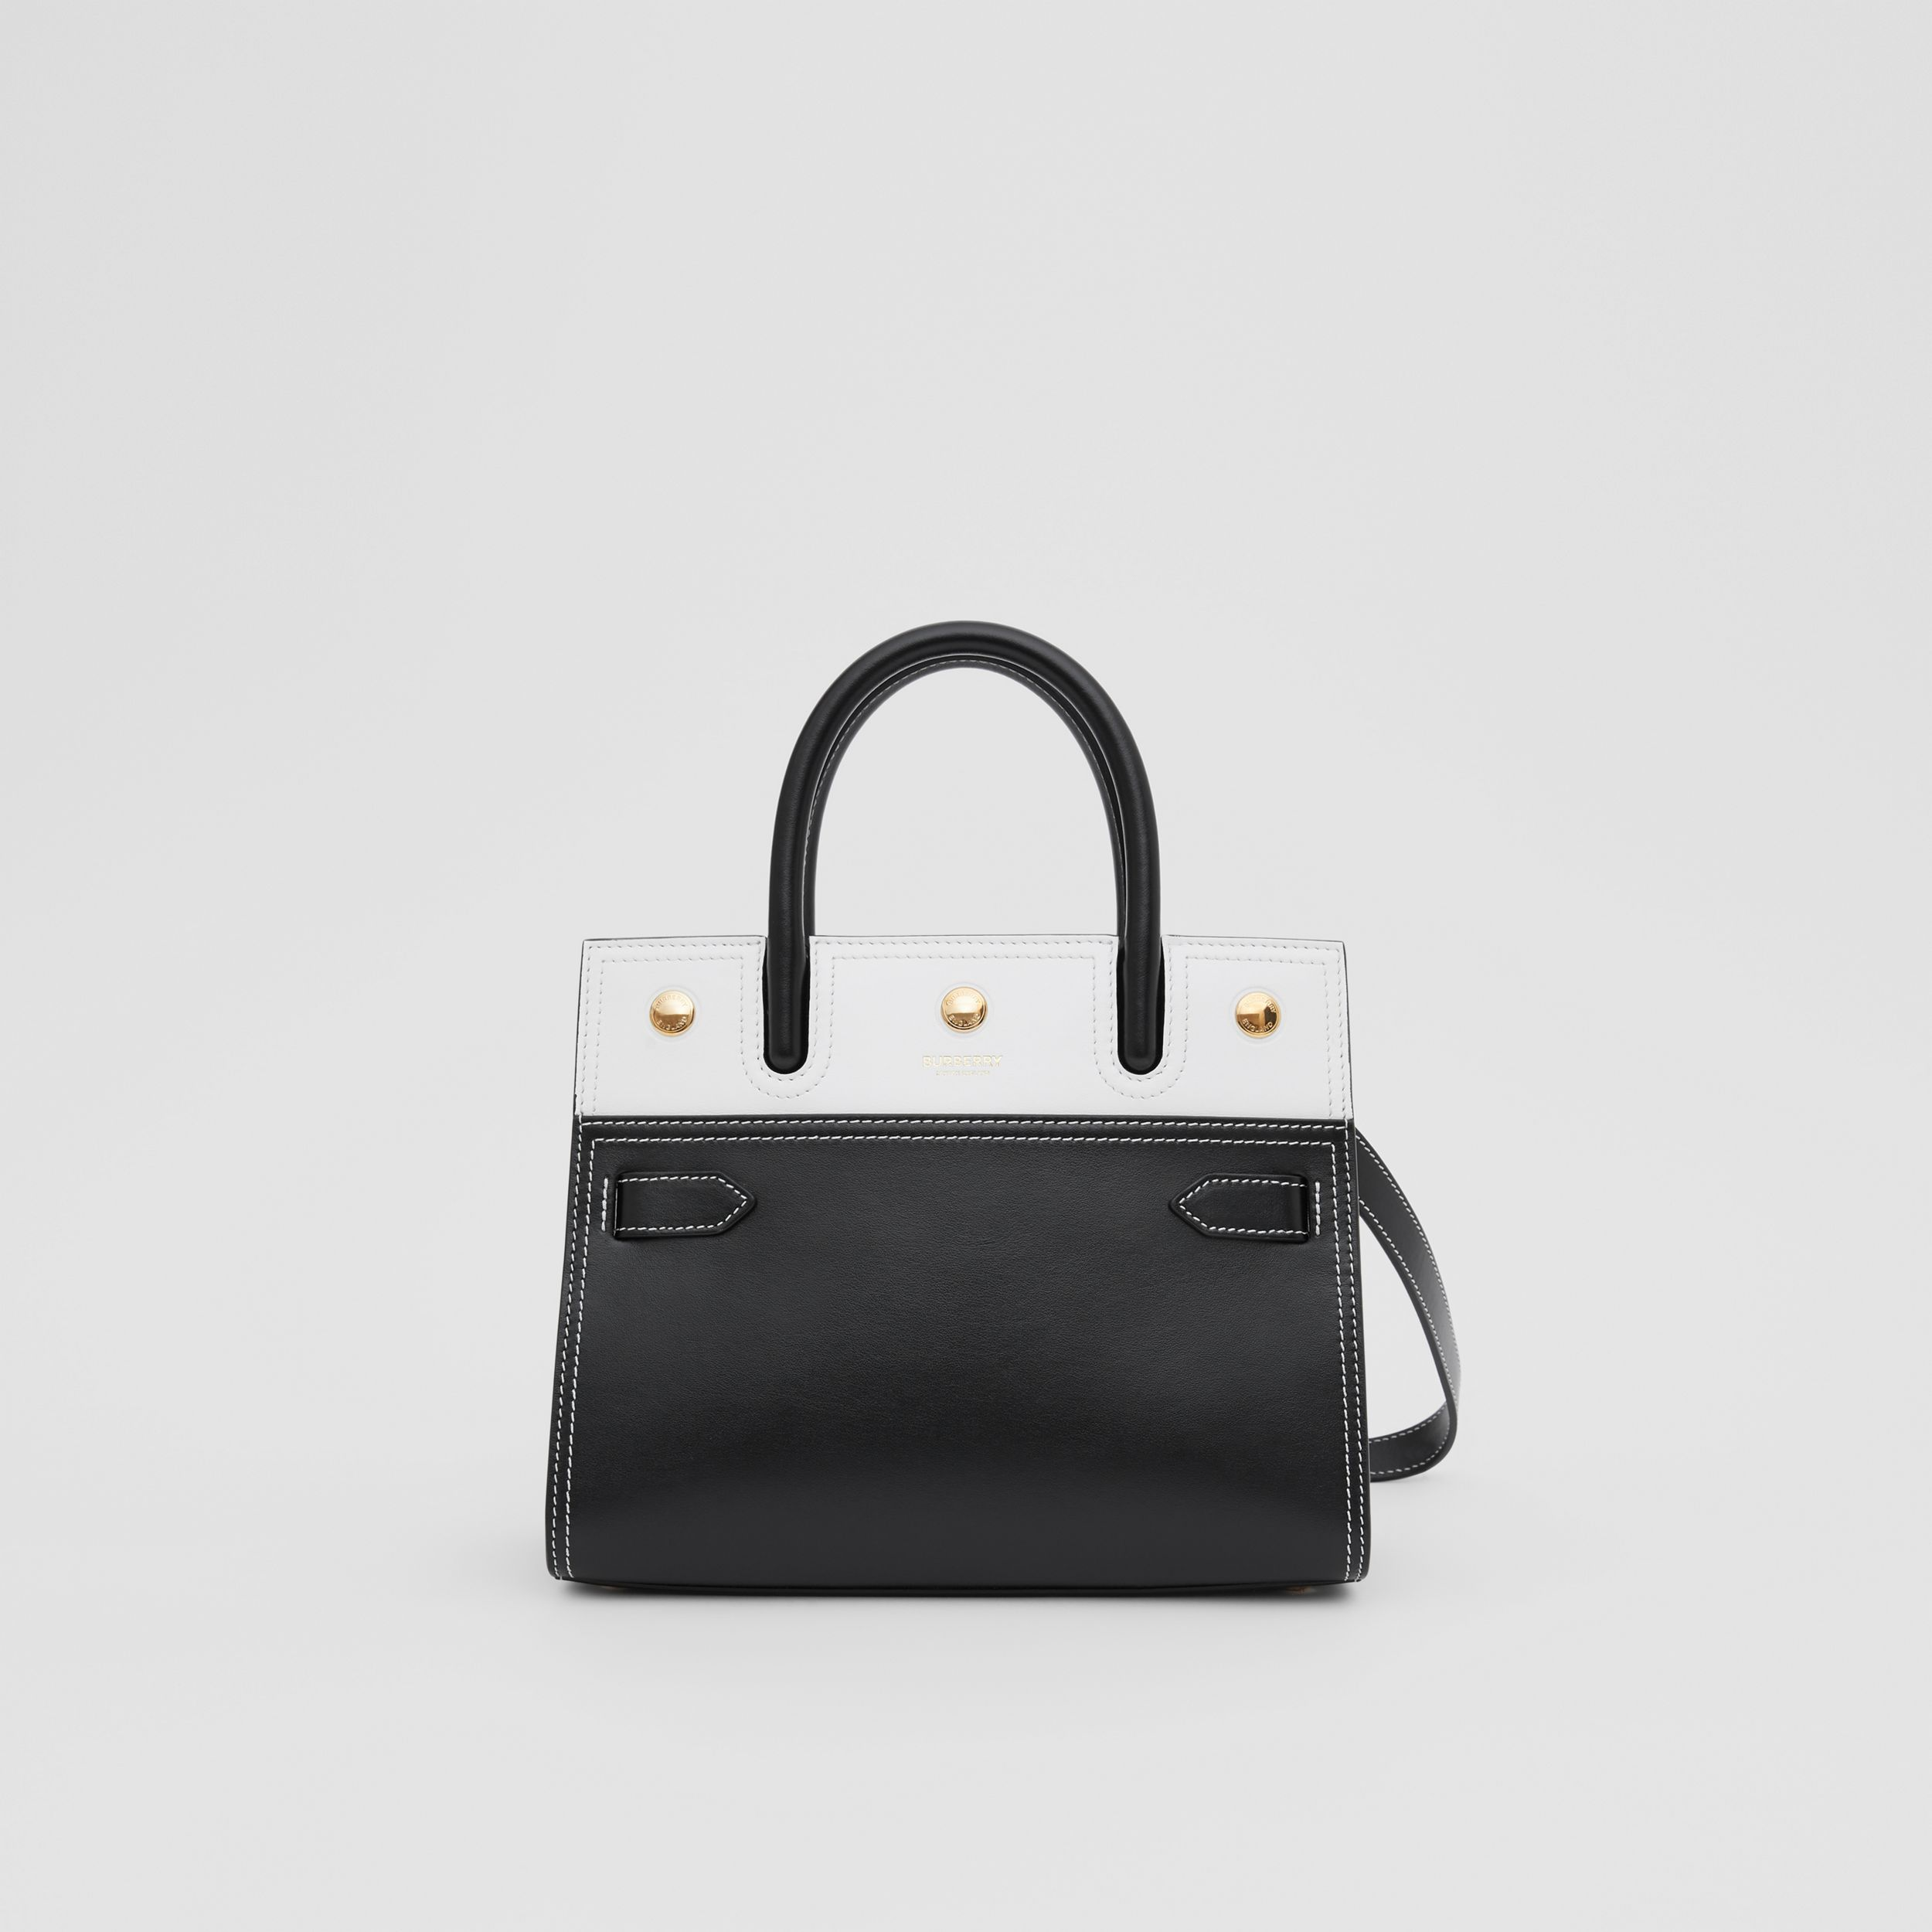 Mini Leather Two-handle Title Bag in Black/white - Women | Burberry - 1